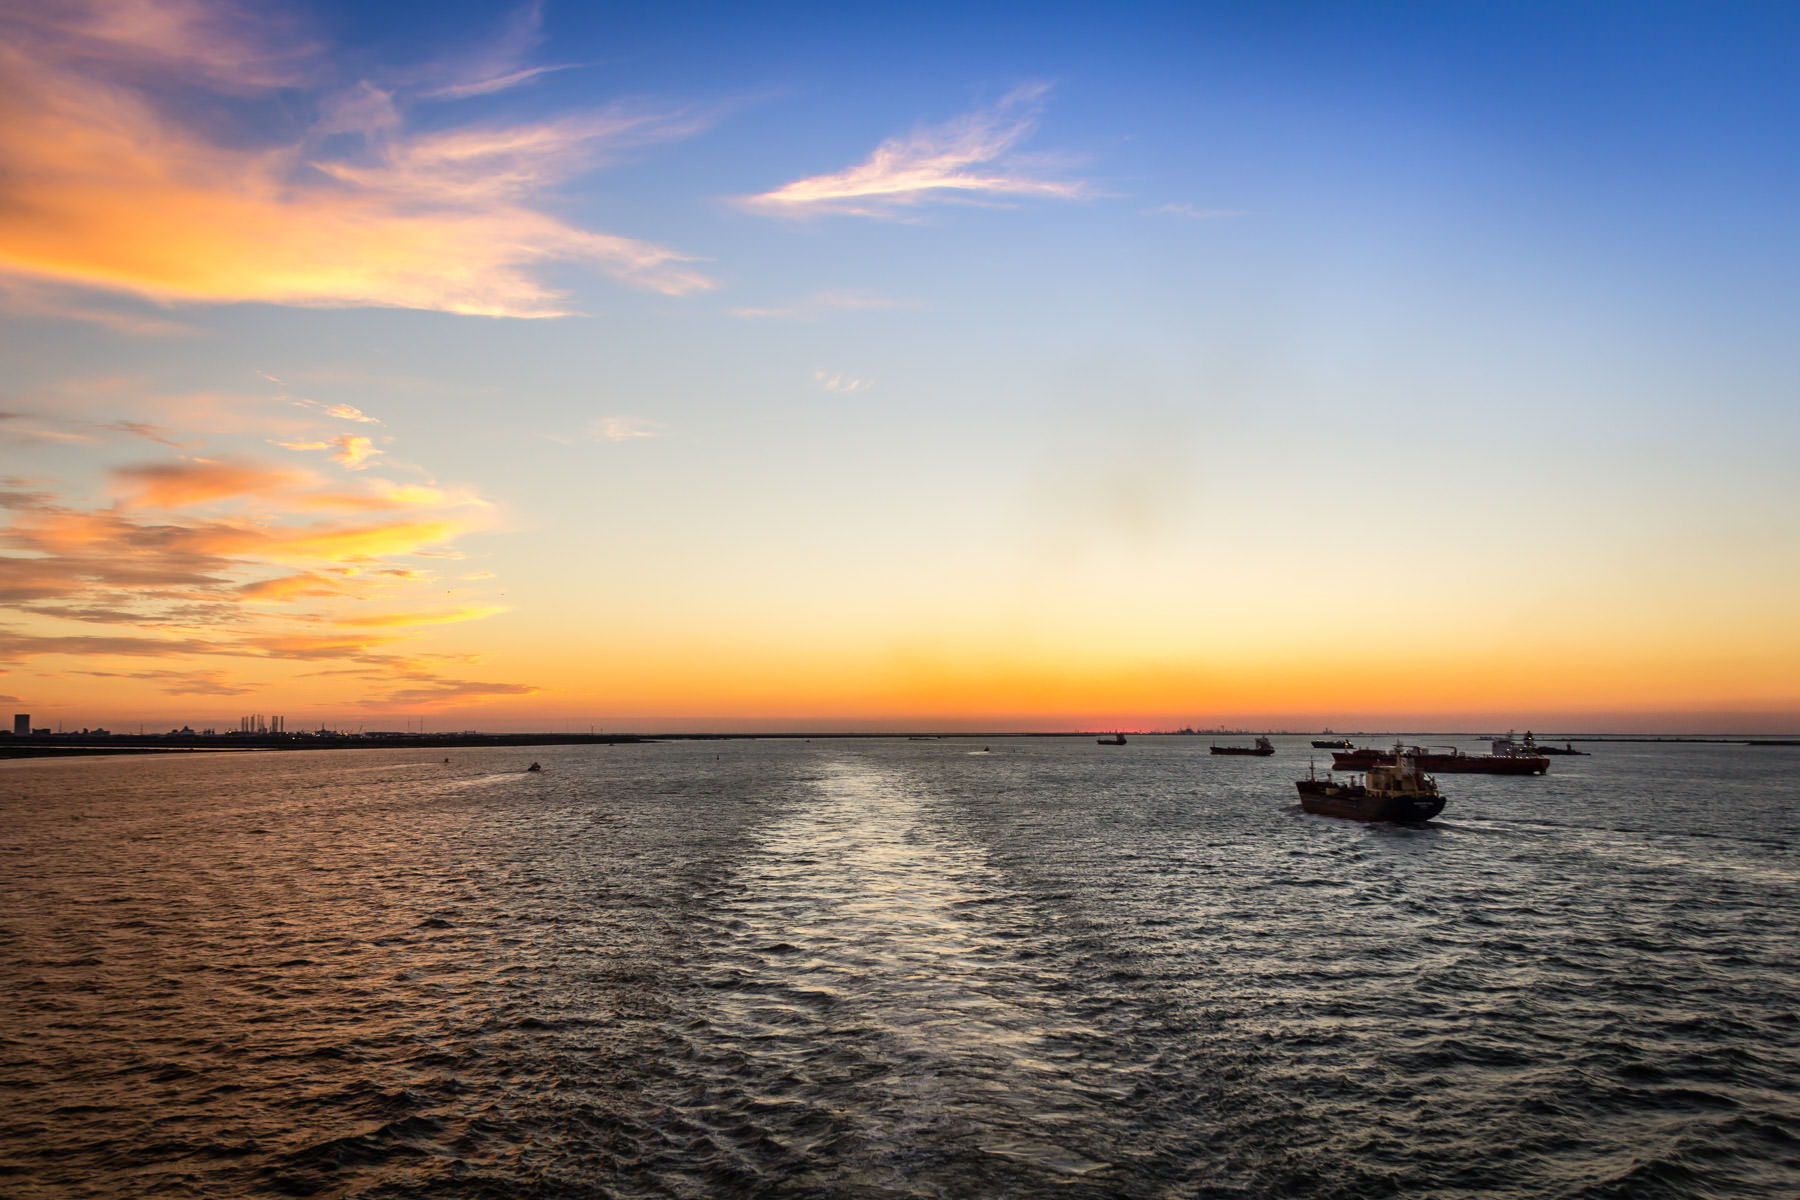 The sun sets on Galveston Bay, Texas, as seen from the deck of the Carnival Triumph.